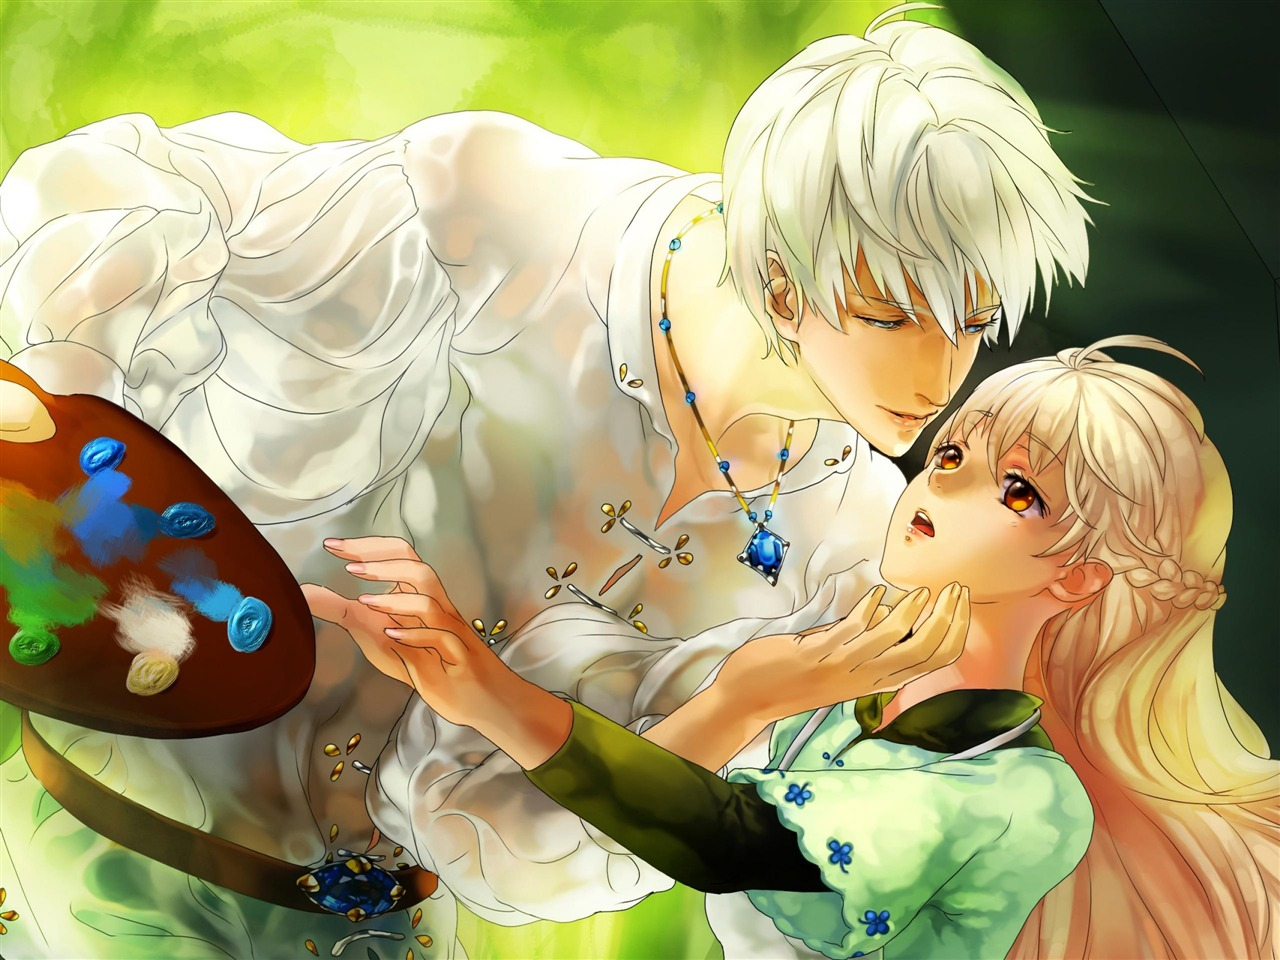 Anime Boy And Girl In Love Wallpaper : garcon Fille-Anime dessin fonds d ?cran HD-1280x960 T?l?chargement 10wallpaper.com